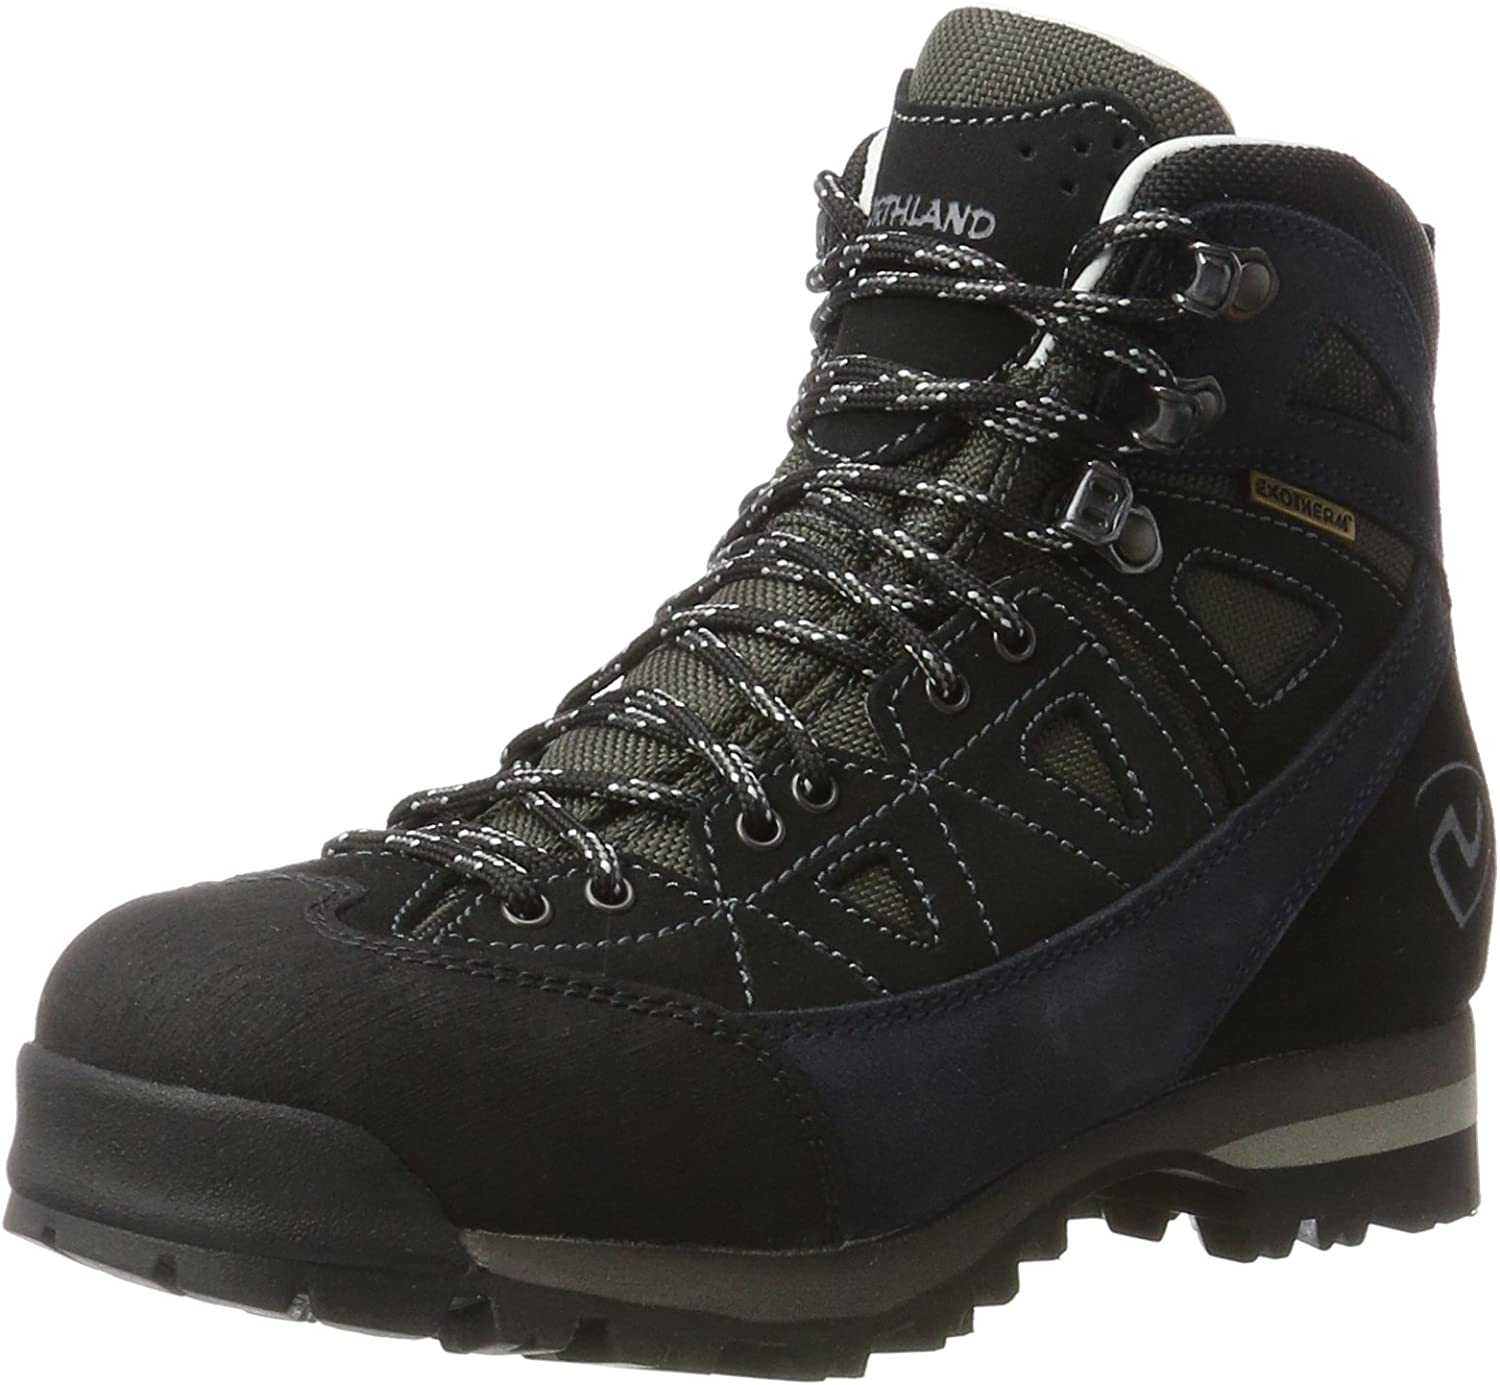 Northland Professional Unisex Adults' Wallis Hc Mountain Boot High Rise Hiking shoes